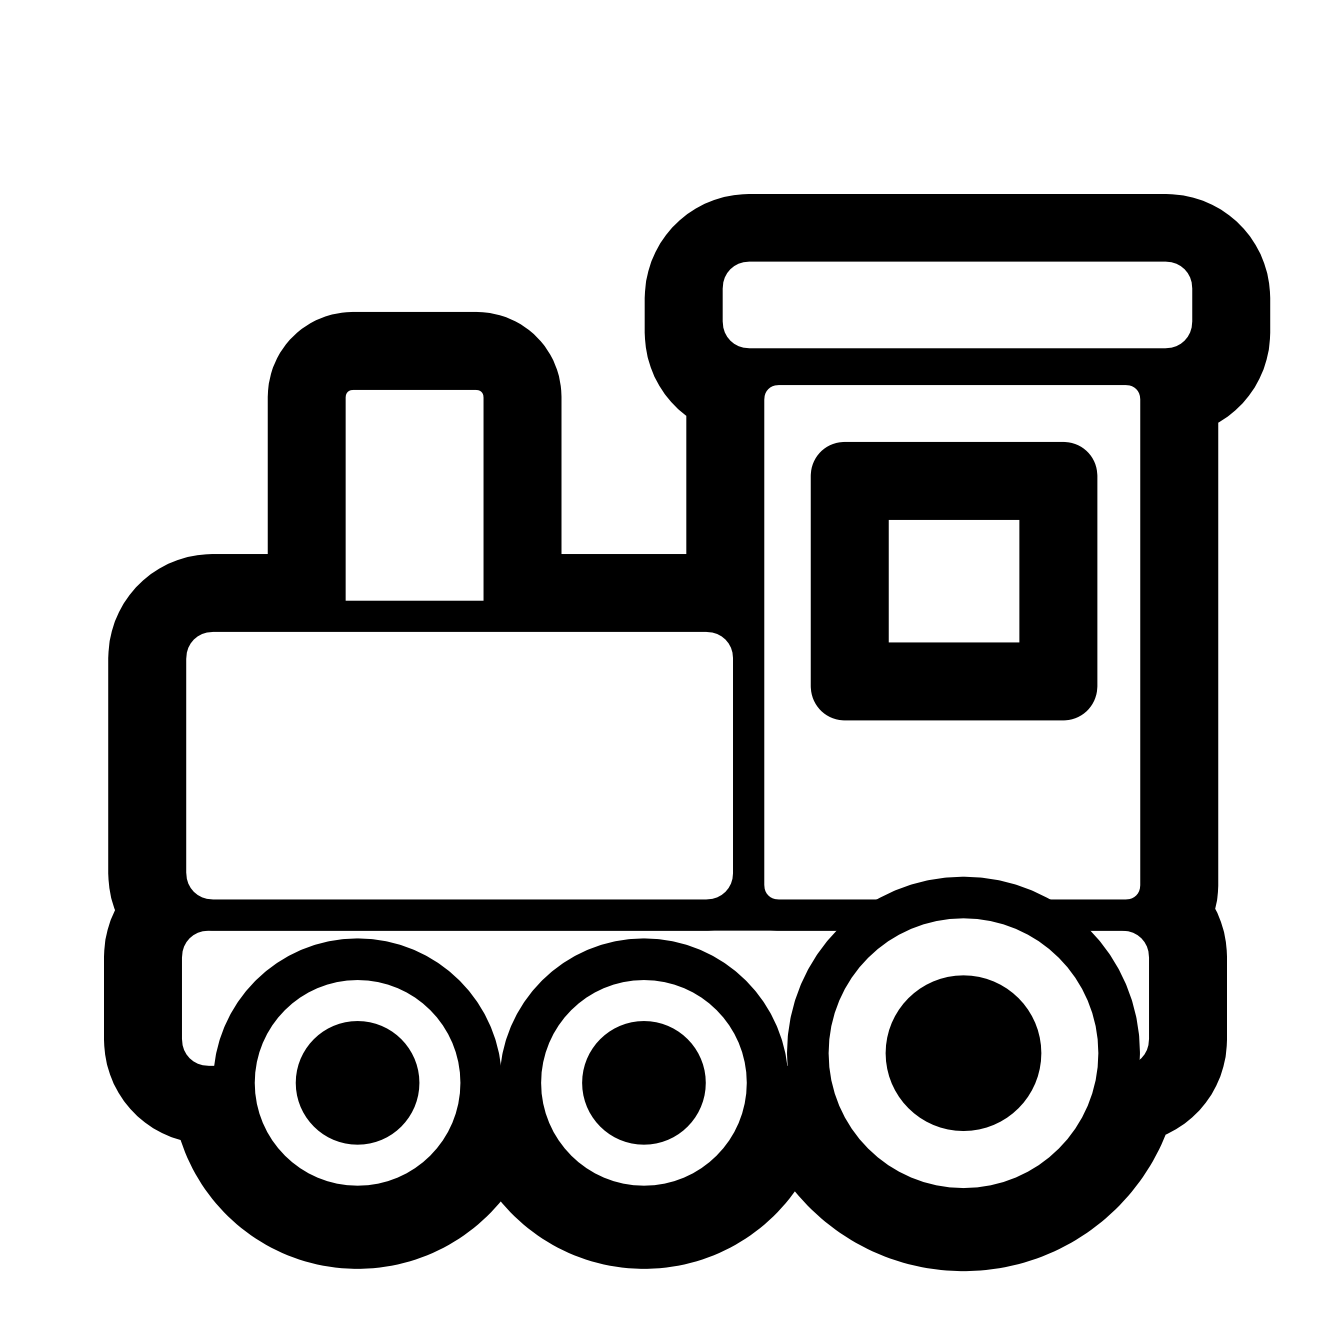 Train car black and white clipart png stock Train Clipart Black And White   Clipart Panda - Free Clipart Images png stock